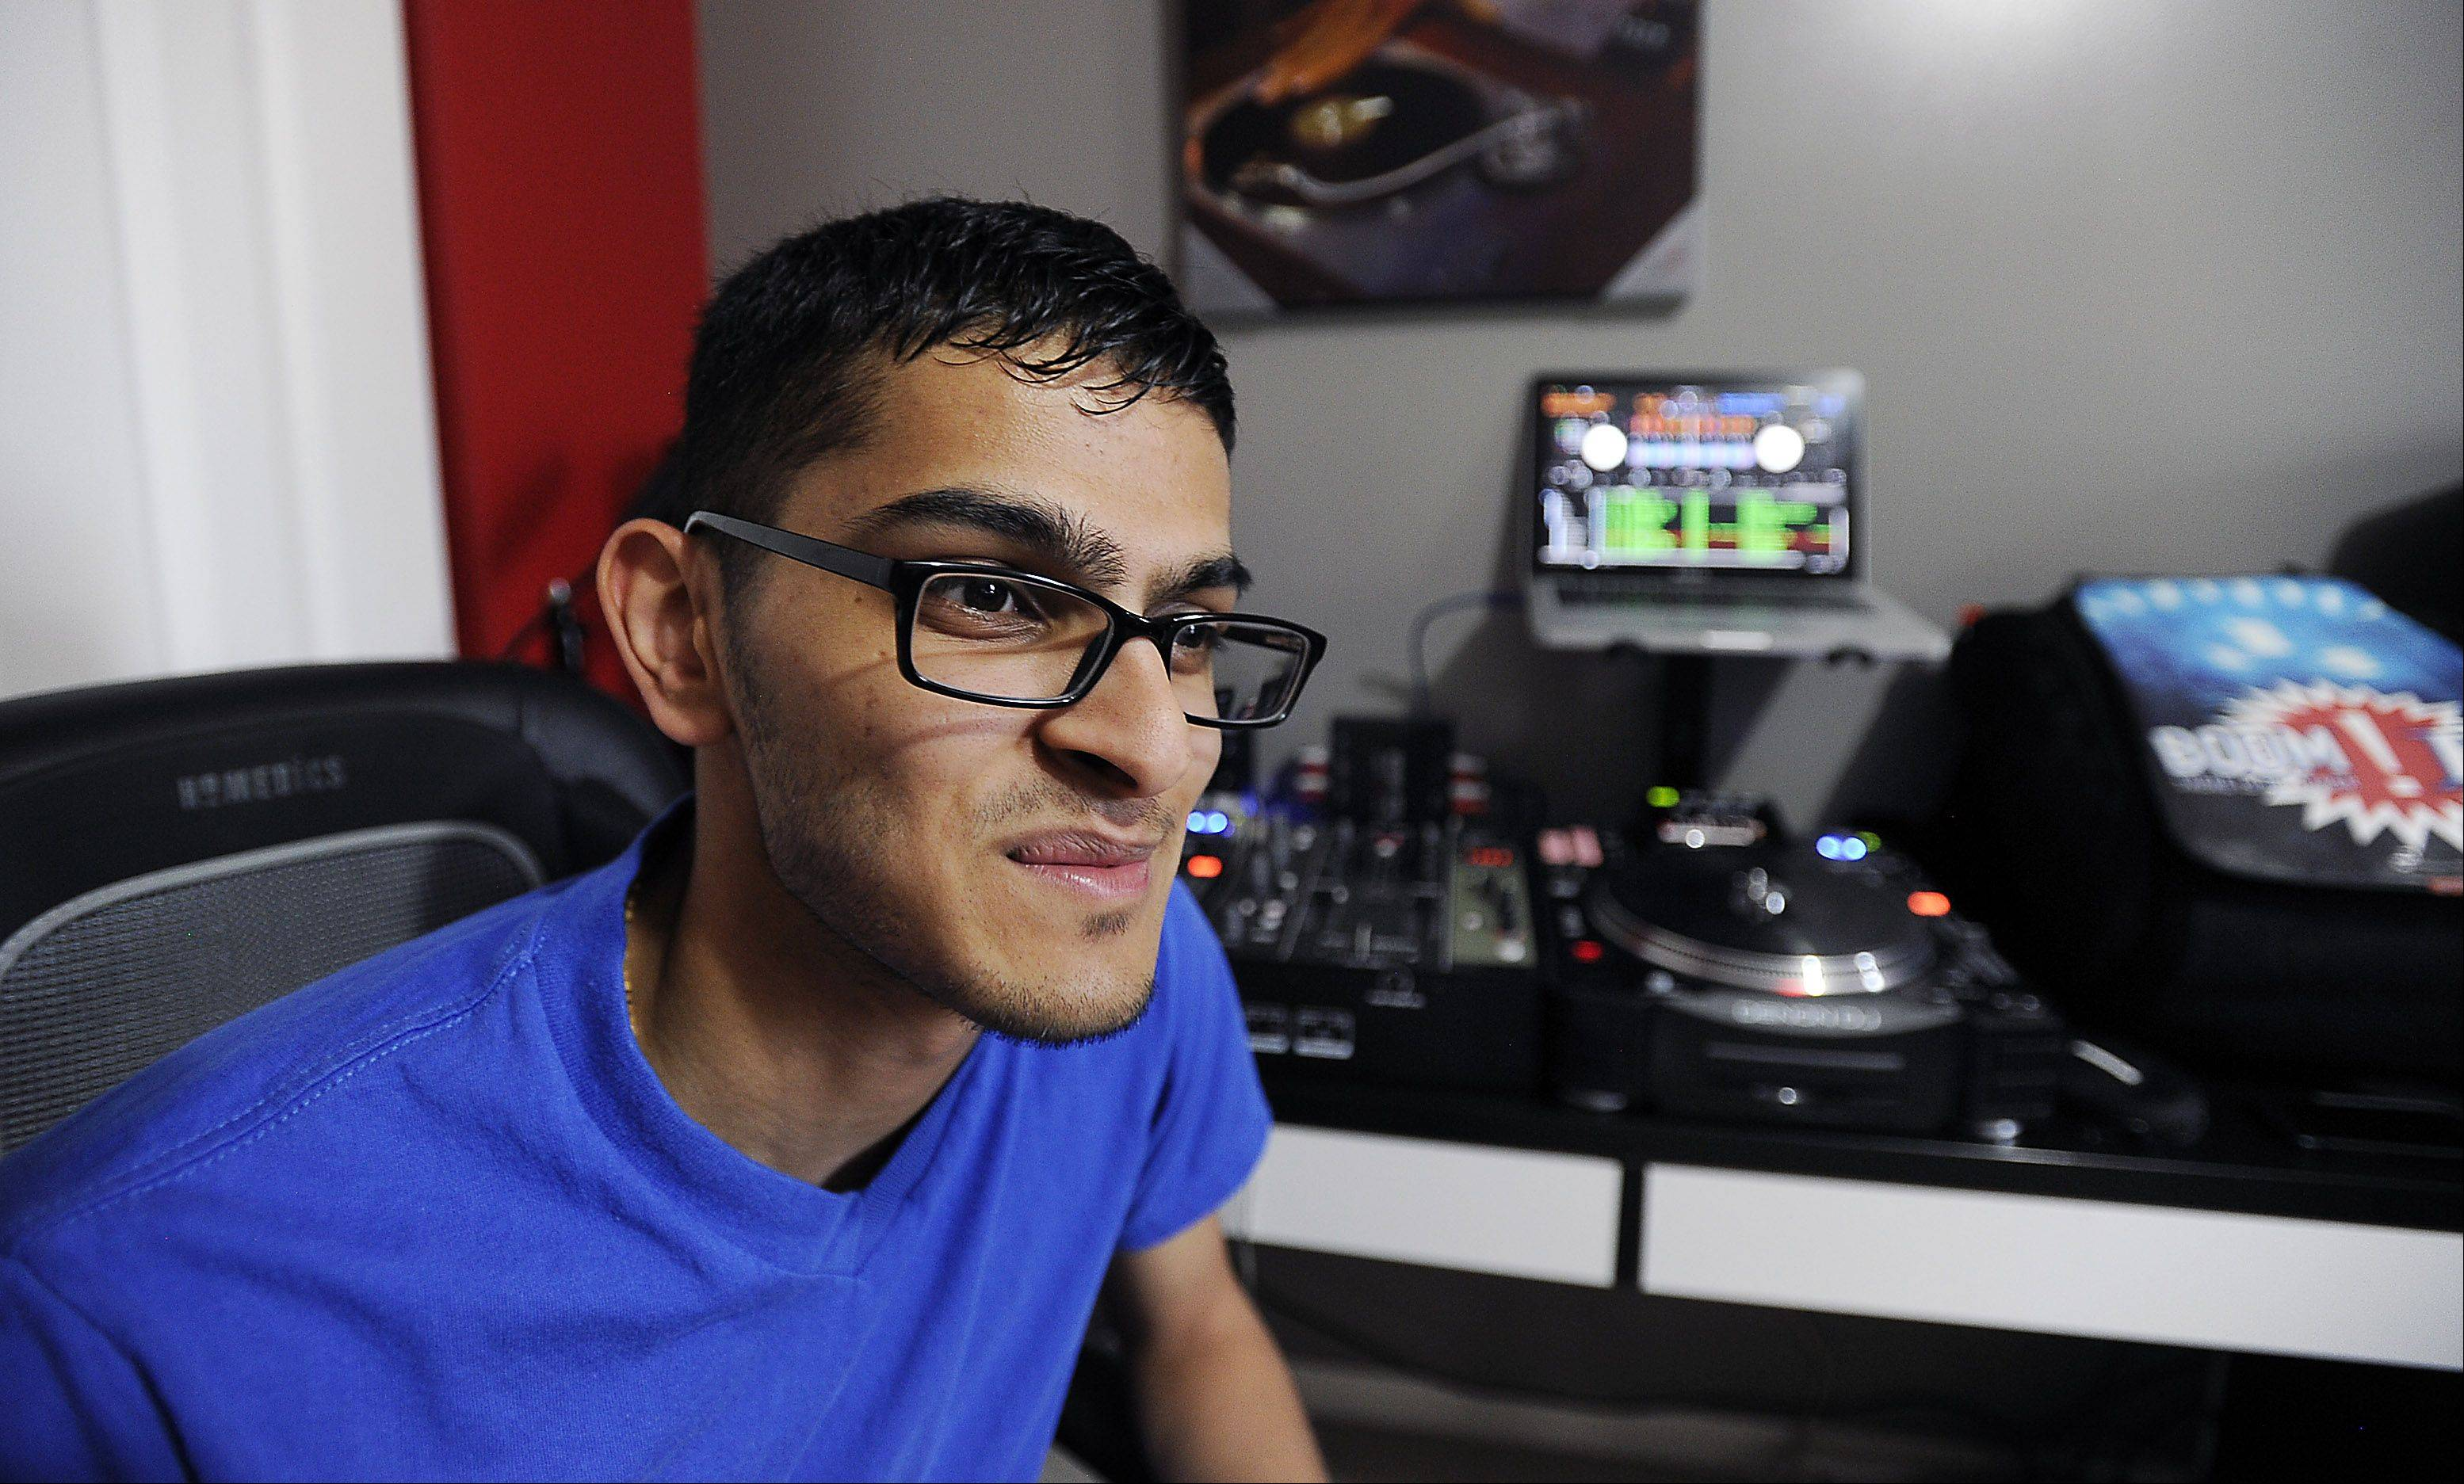 Schaumburg native Sahaj Shah, 21, aka DJ Mr. Shaw, talks about his passion for being a DJ while practicing in his studio/bedroom. His craft requires him to be part-musician, part-engineer and part-street performer.